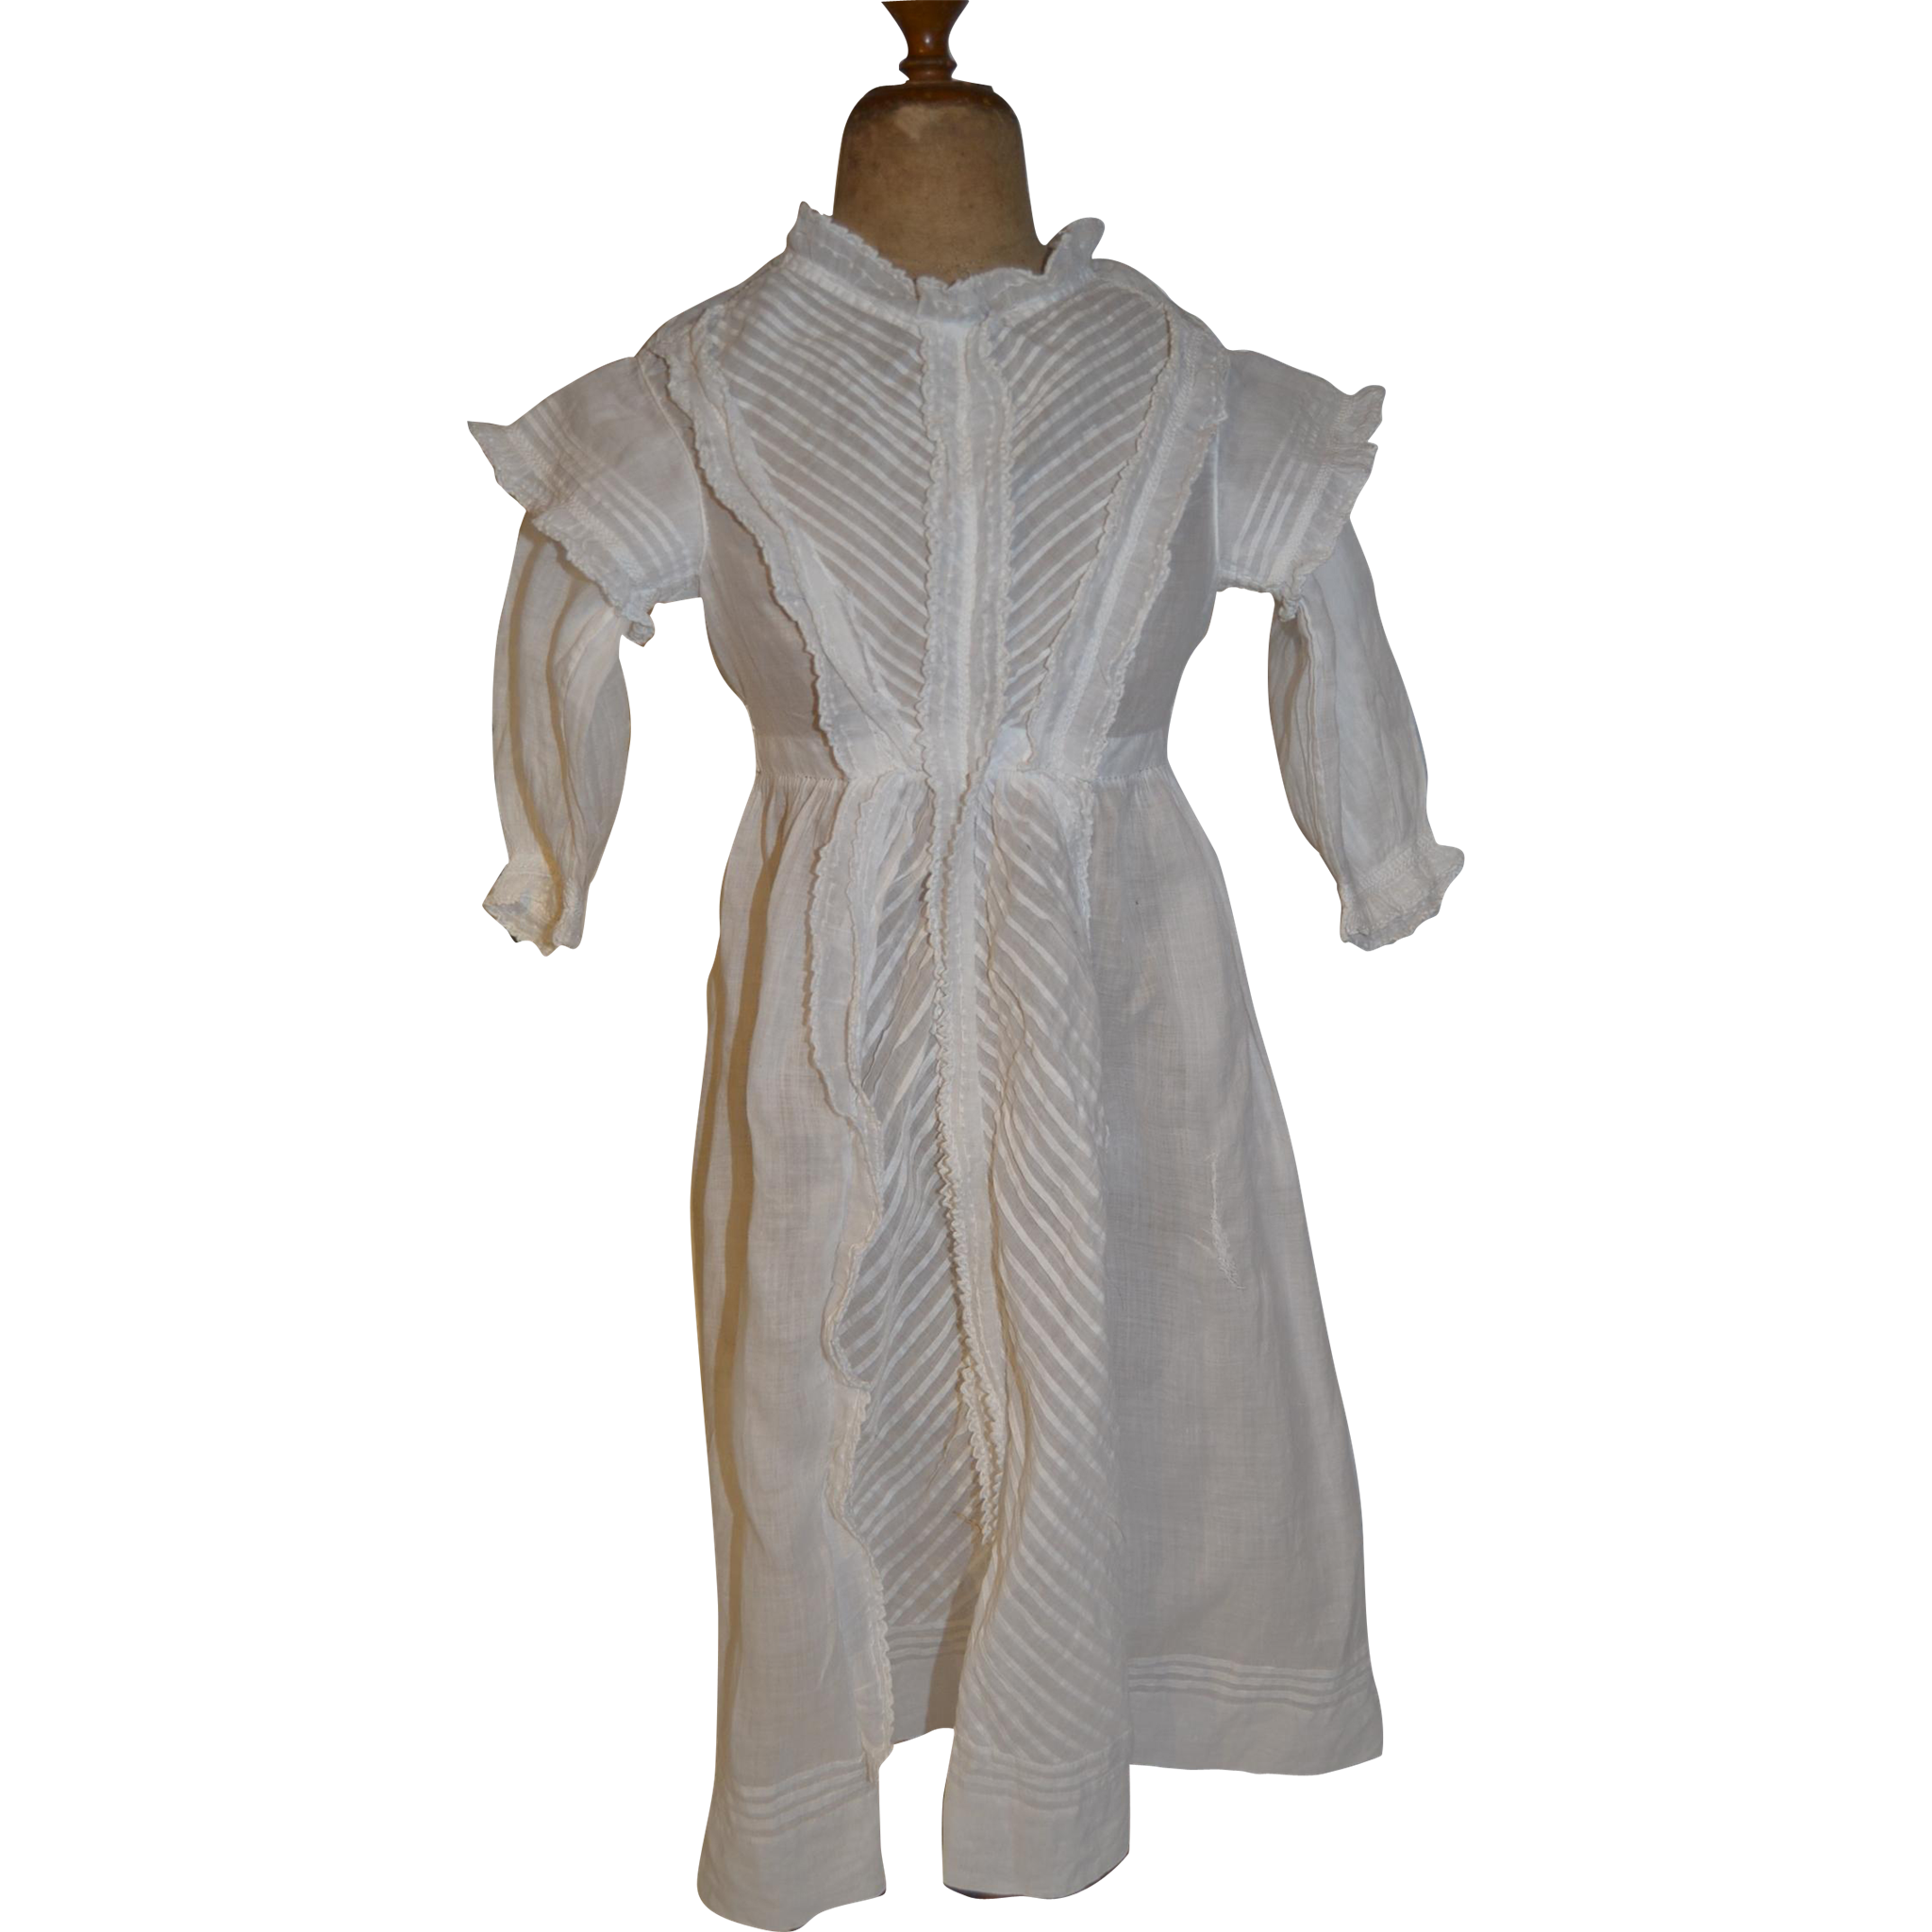 Baptist 1880 dress for your wax doll